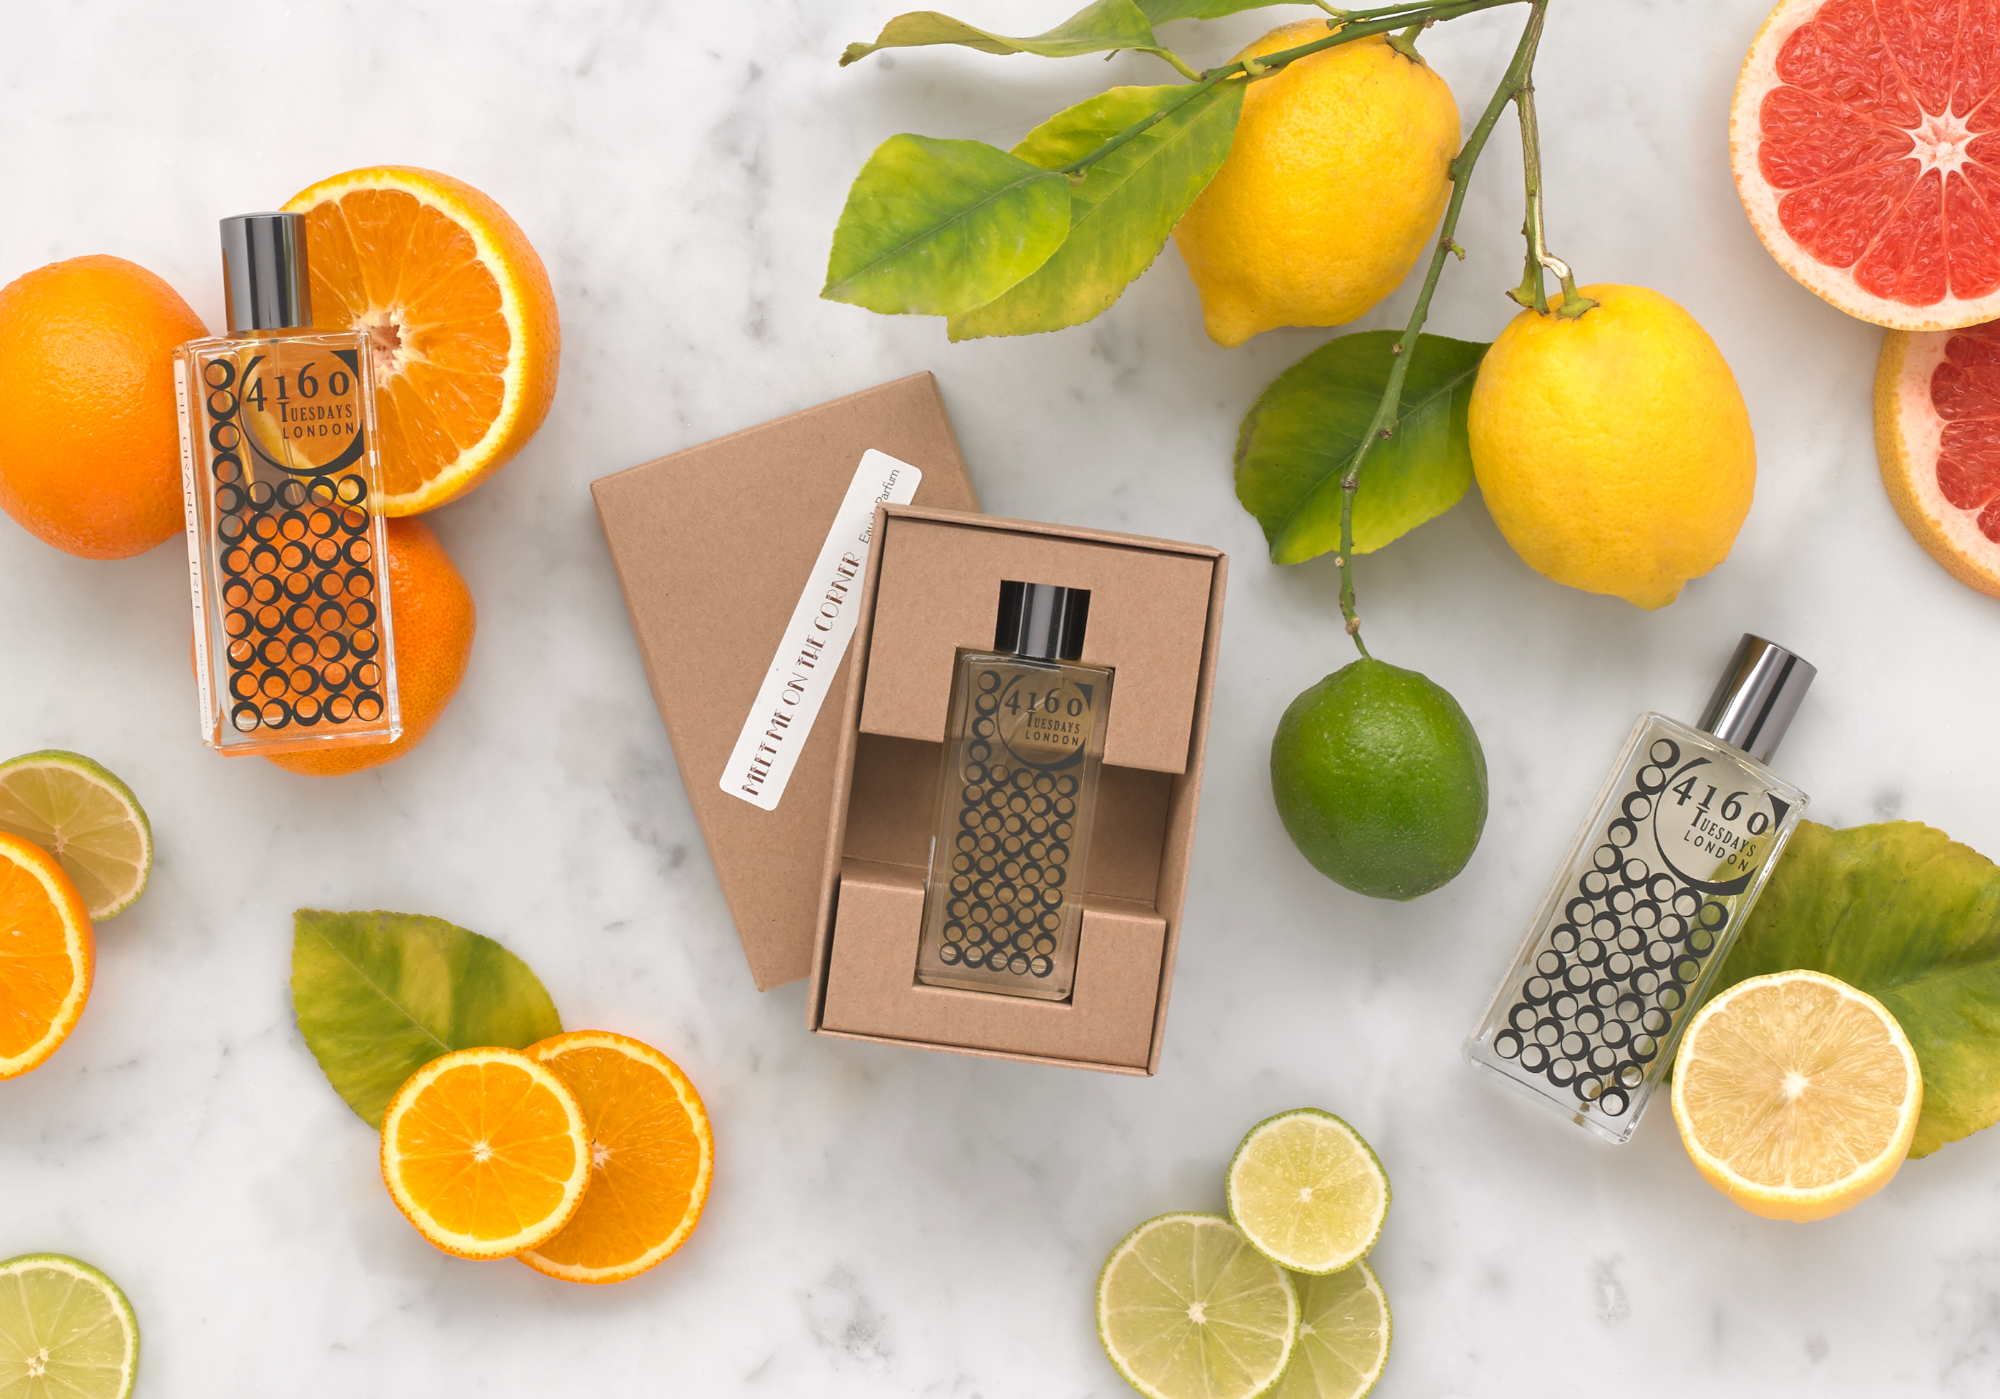 Stylised photo of a bottle of 4160 Tuesdays perfume surrounded by oranges, lemons and limes